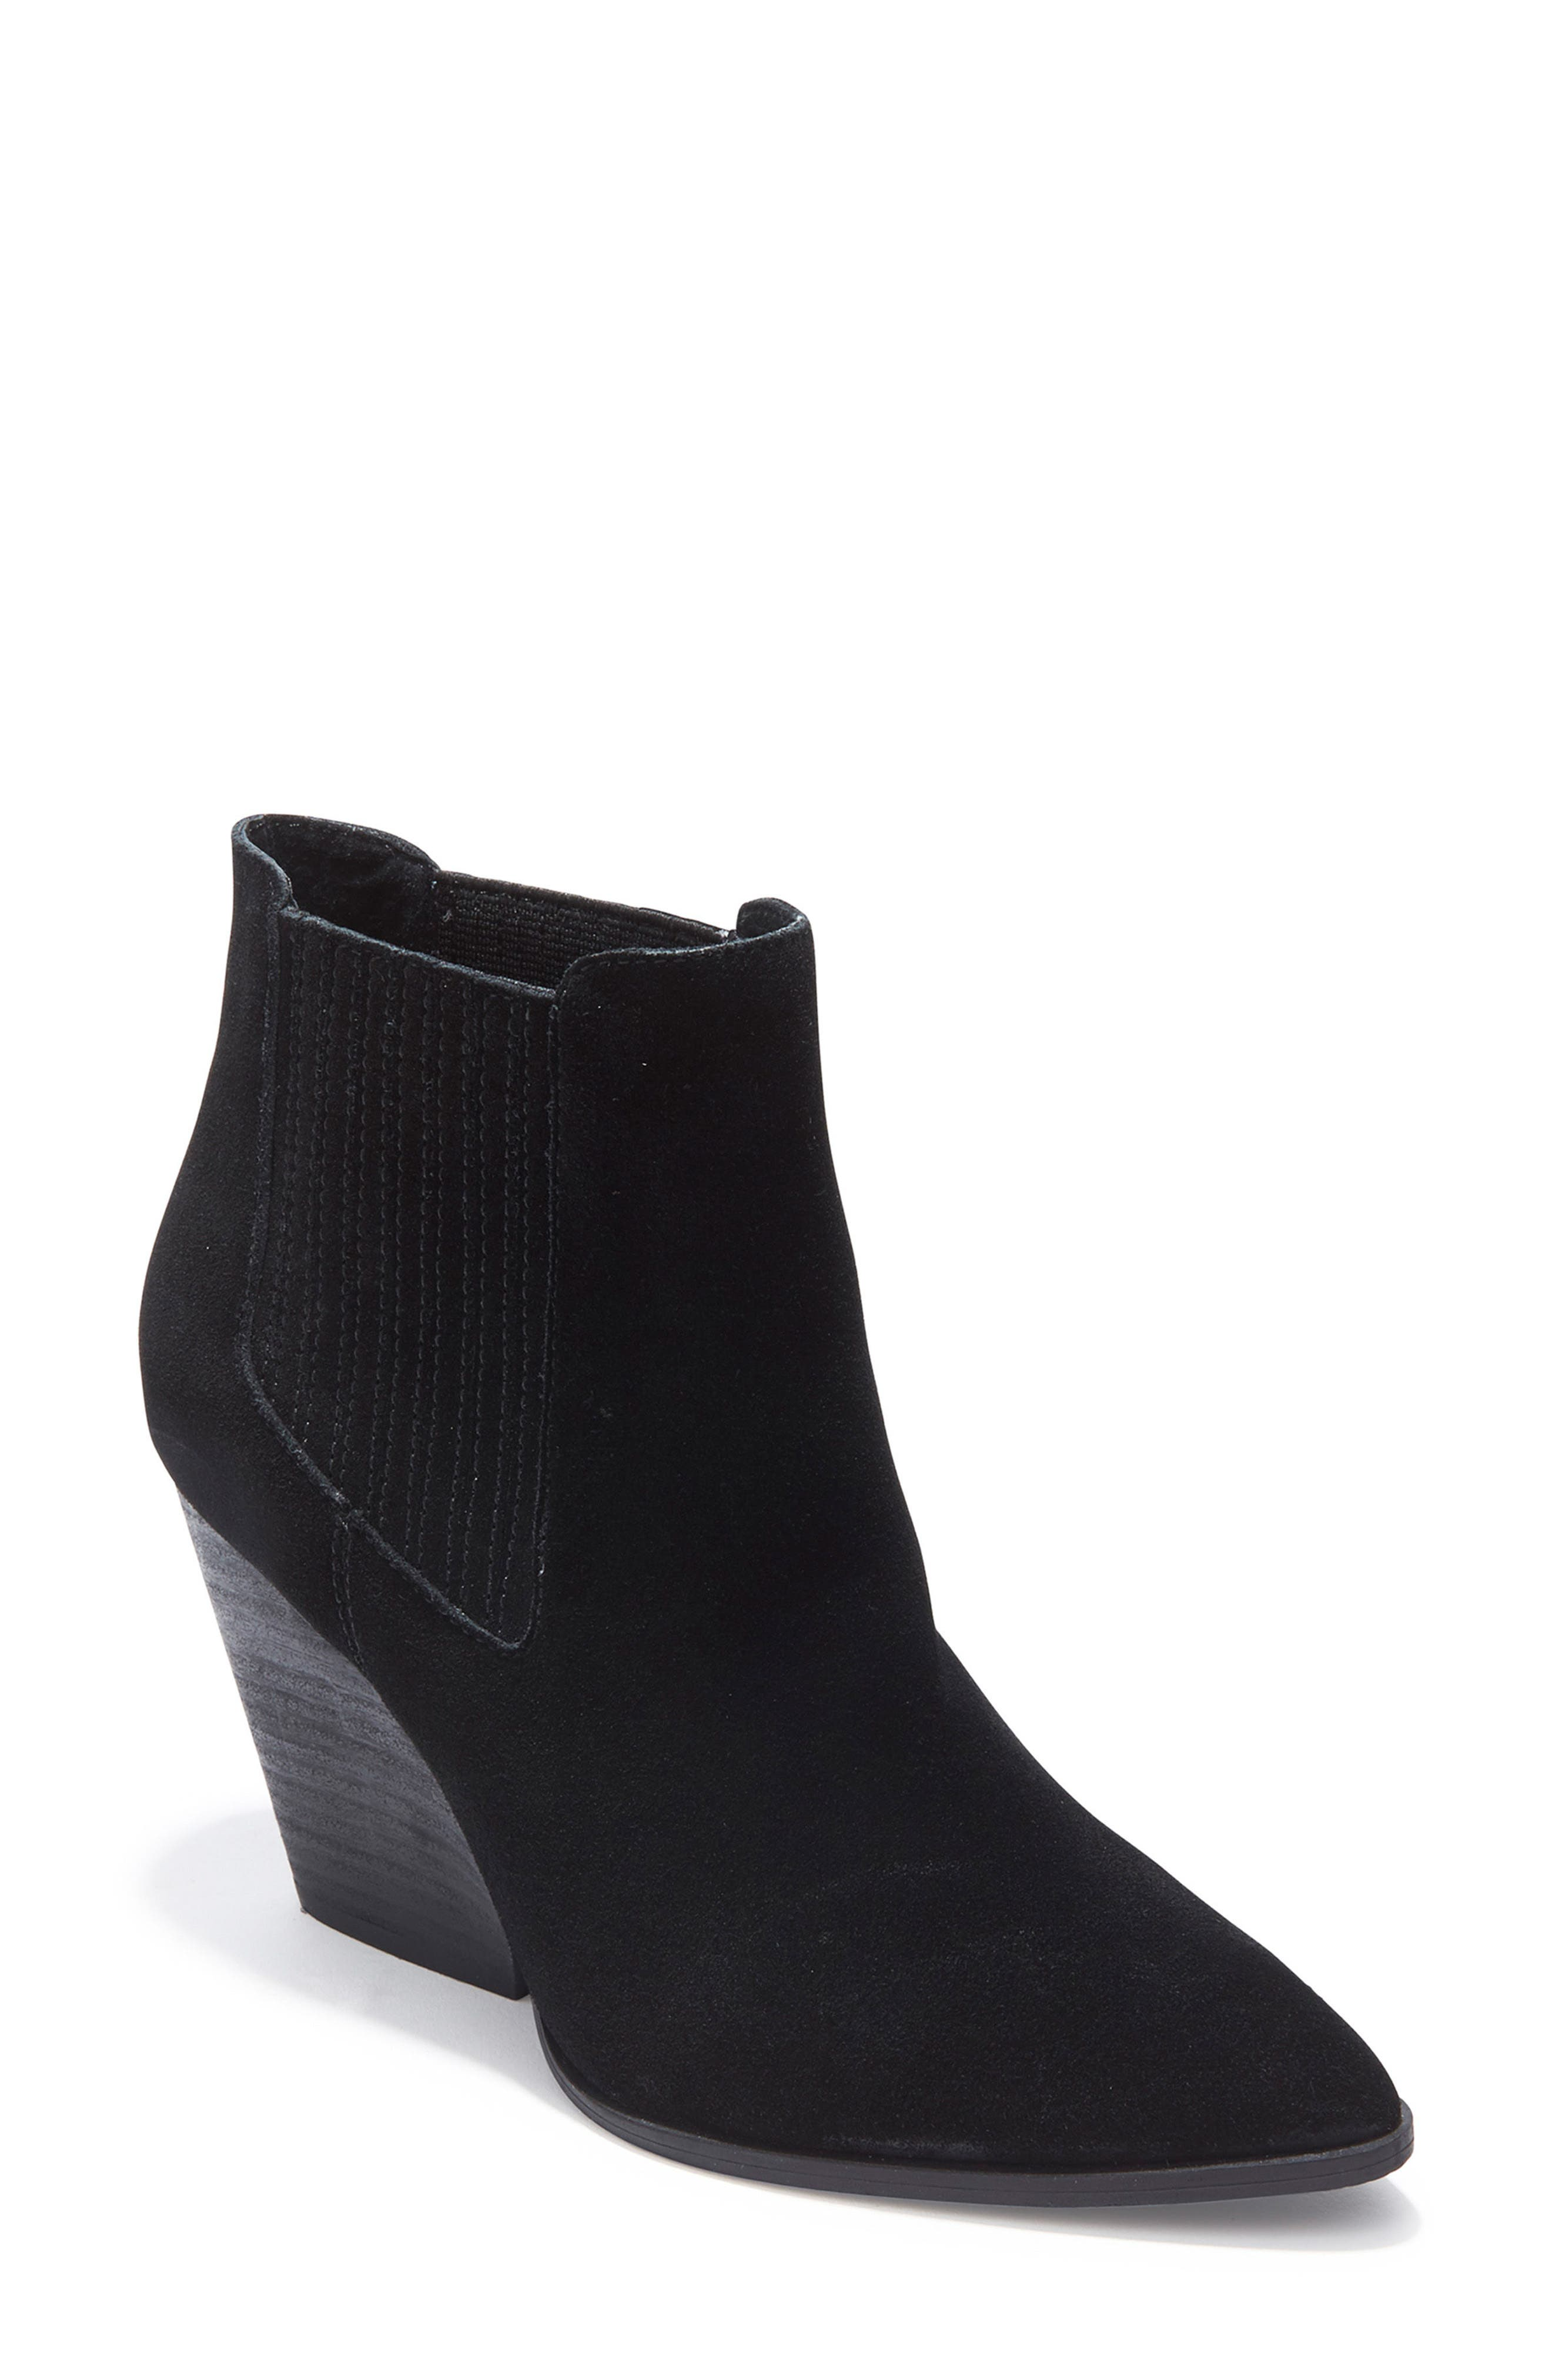 ADAM TUCKER BY ME TOO Mason Wedge Bootie, Main, color, 014